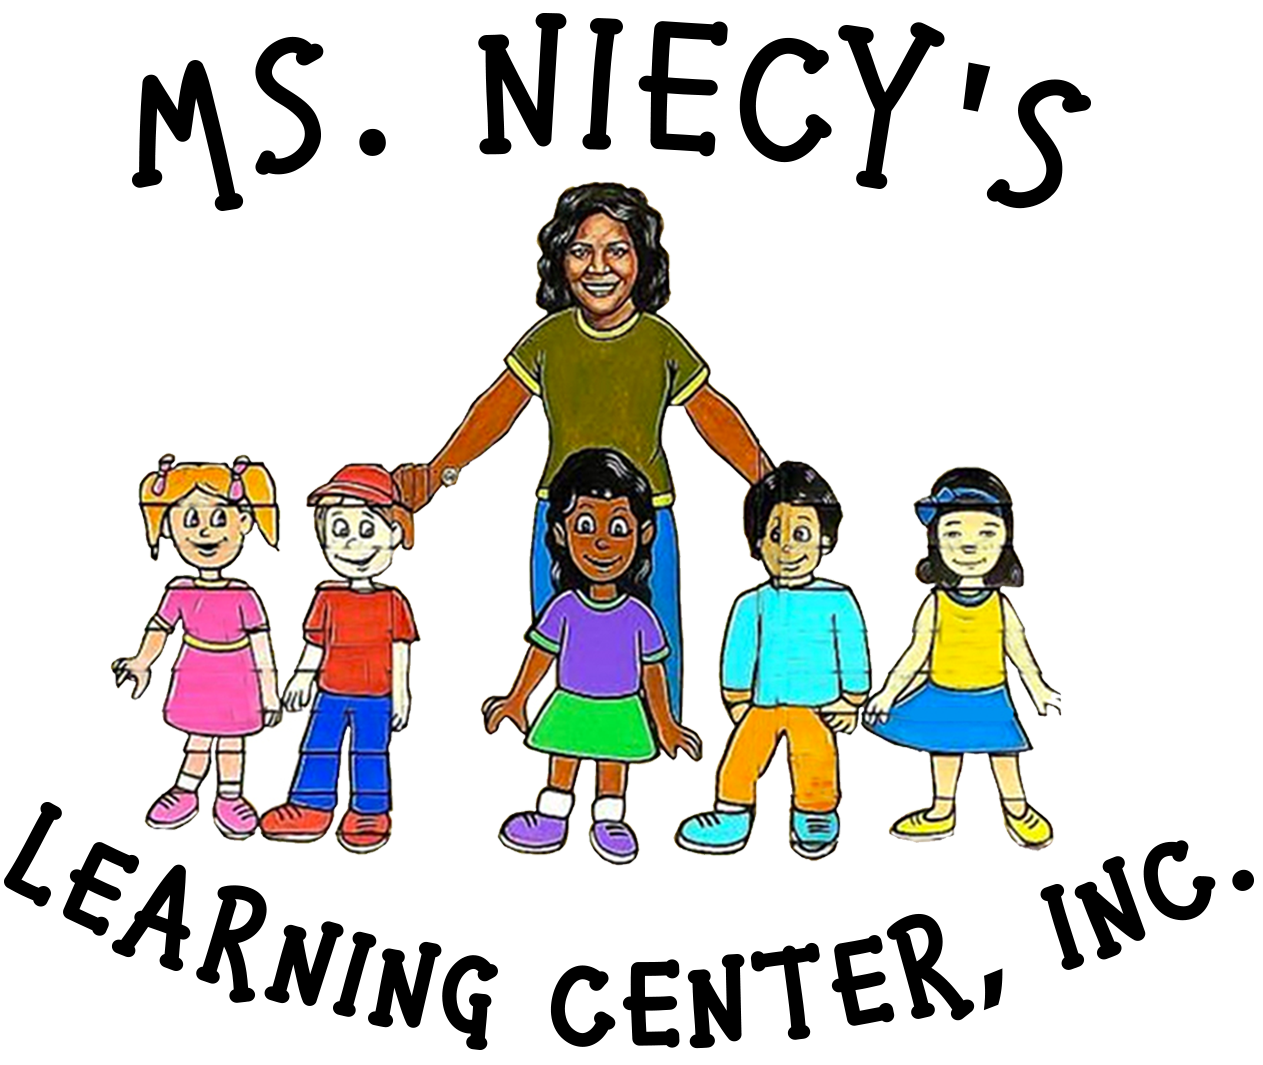 Ms. Niecy's Learning Center